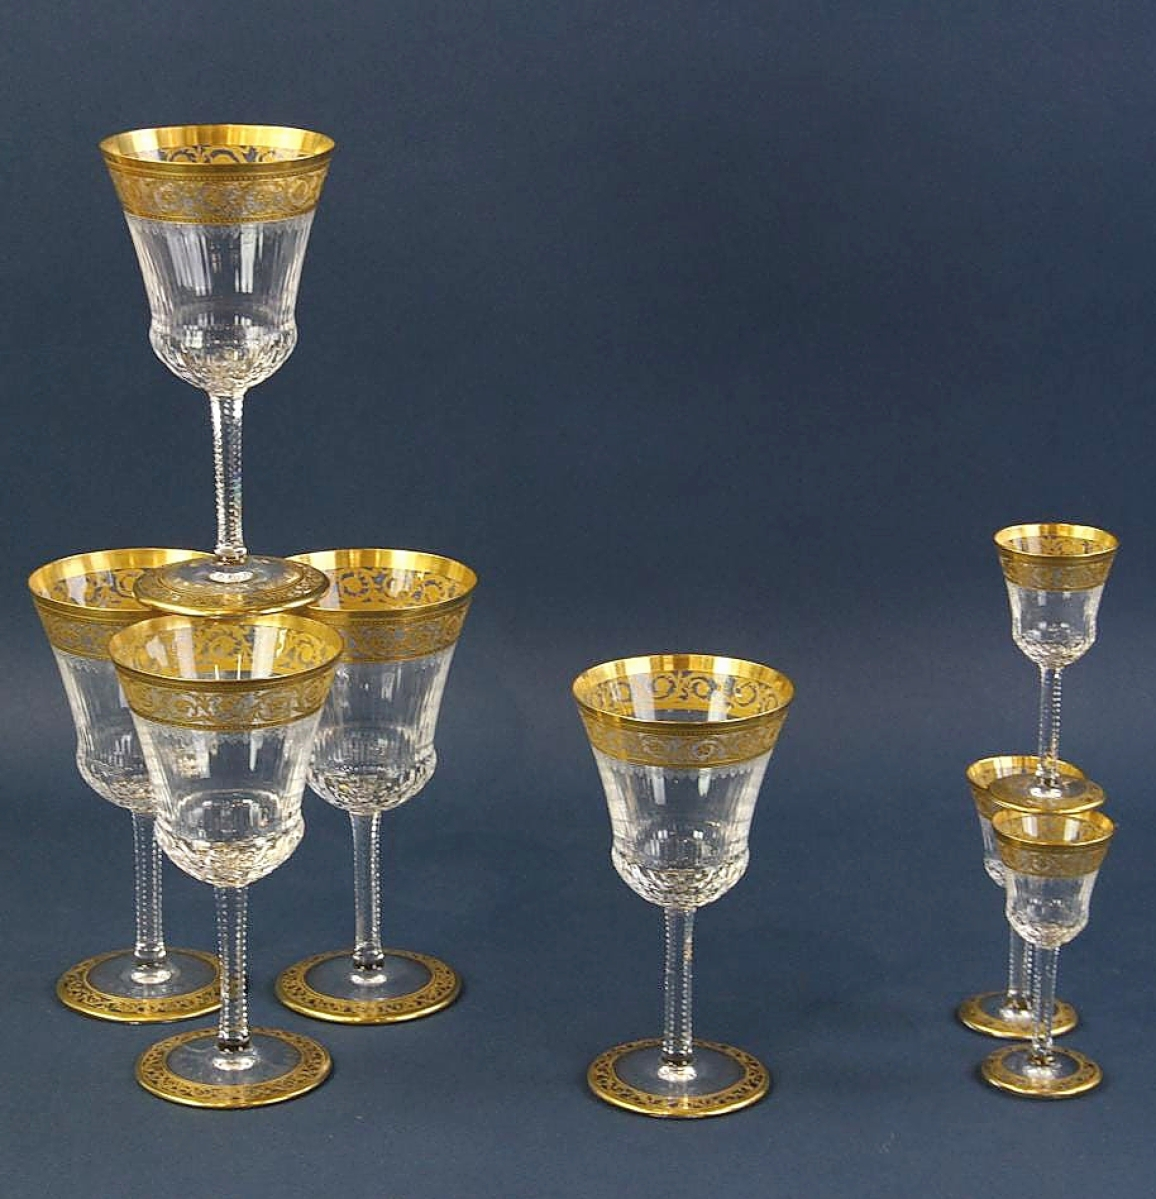 A wide selection of stemware used at the Ford mansion for entertaining was sold in large lots. Forty-seven pieces of gold-rimmed stemware by Moser earned $7,200.